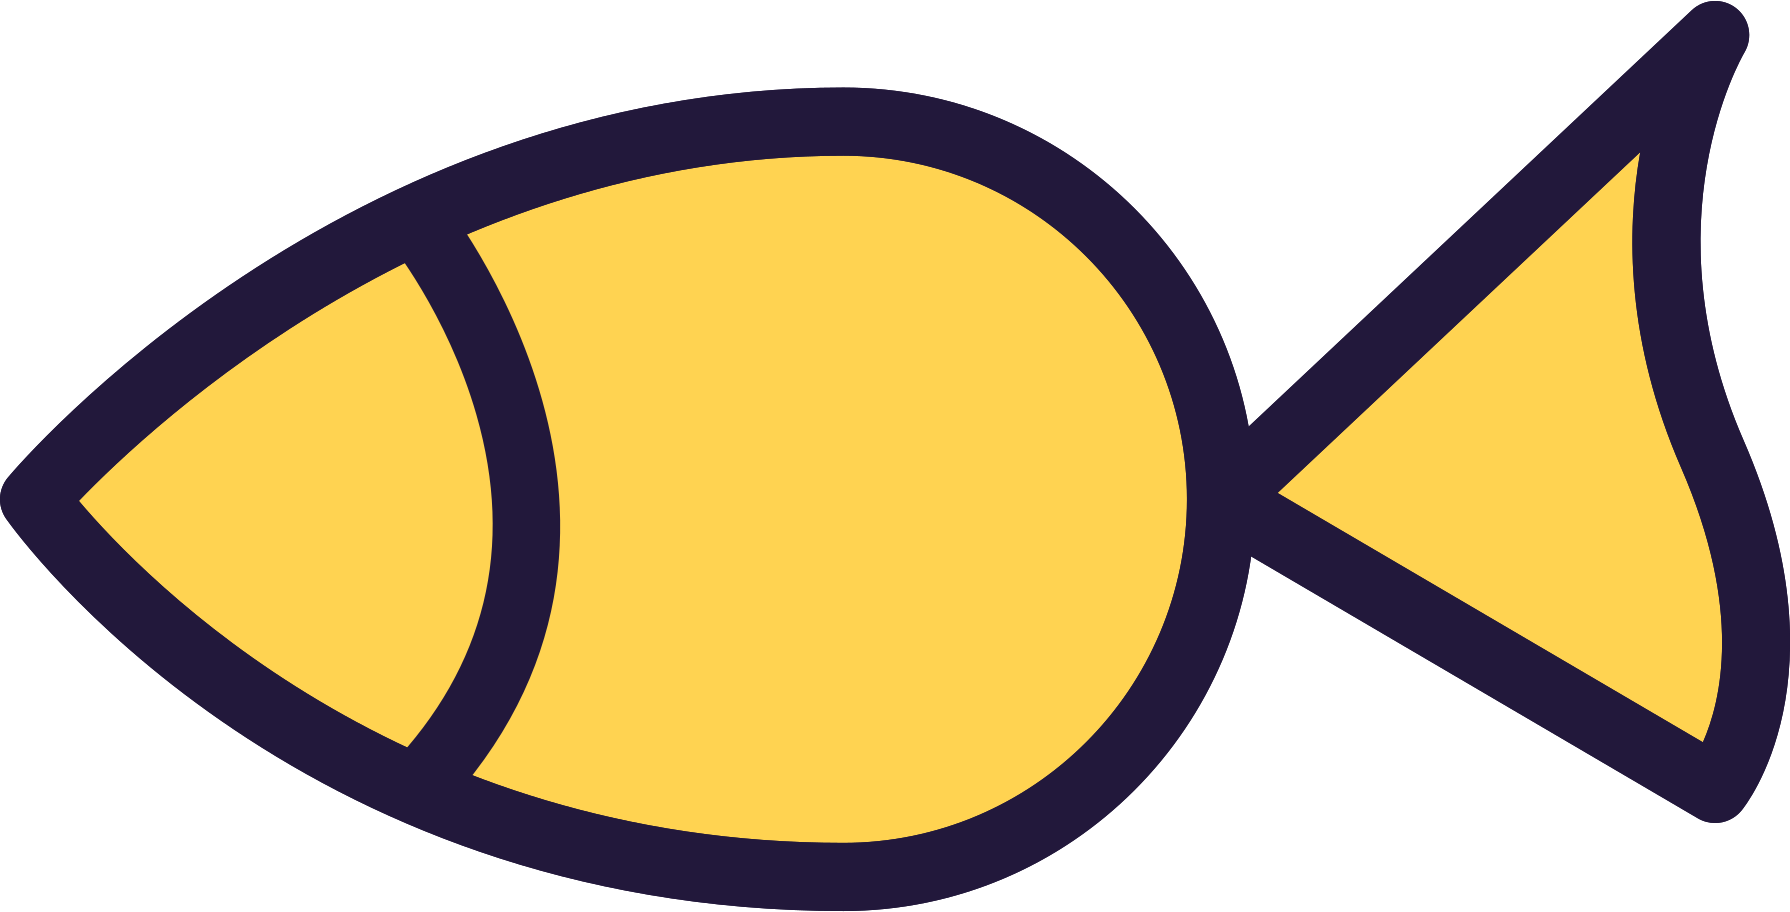 style fish Vector images in PNG and SVG   Icons8 Illustrations